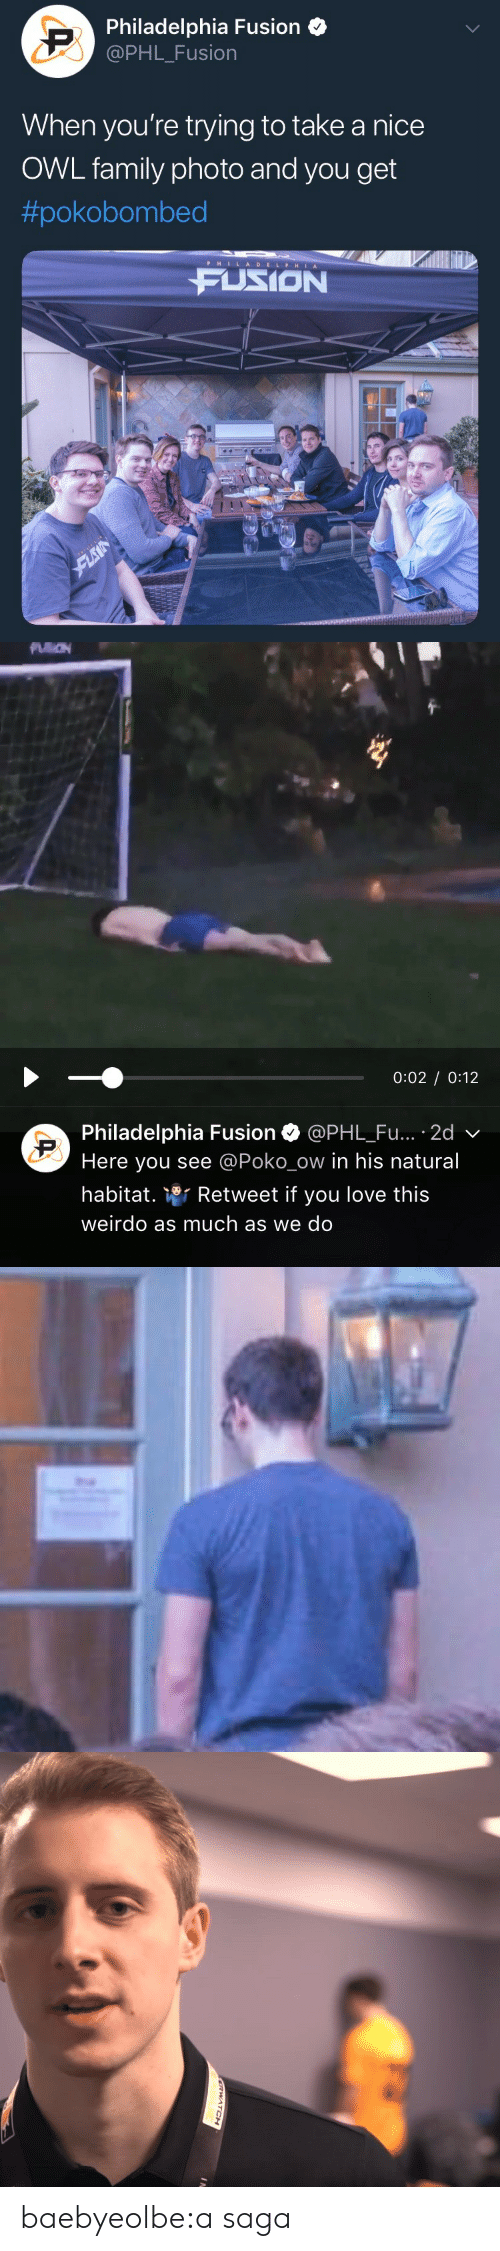 weirdo: Philadelphia Fusion  @PHL_Fusion  When you're trying to take a nice  OWL family photo and you get  #pokobombed  P HILADELPHIA  FUSION   0:02 0:12  Philadelphia Fusion Ф @PHL.Fu.. . 2d  Here you see @Poko_ow in his natural  habitat. Retweet if you love this  weirdo as much as we do baebyeolbe:a saga